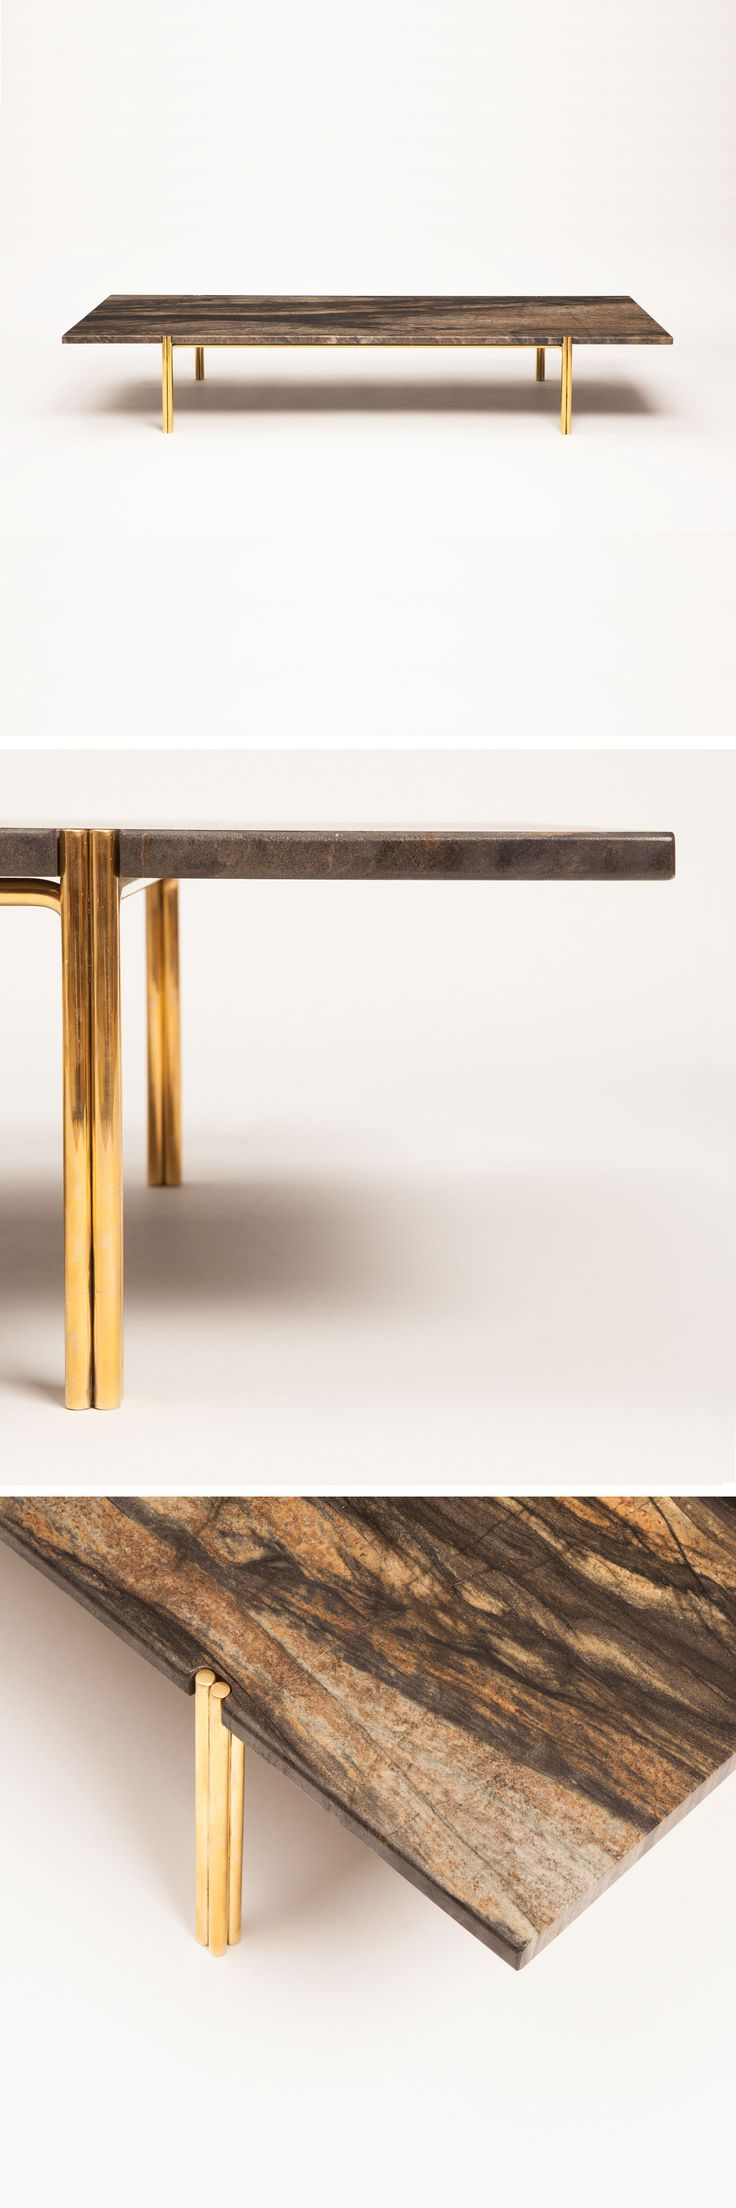 low table from Christopher Allen with marble and brass -★-